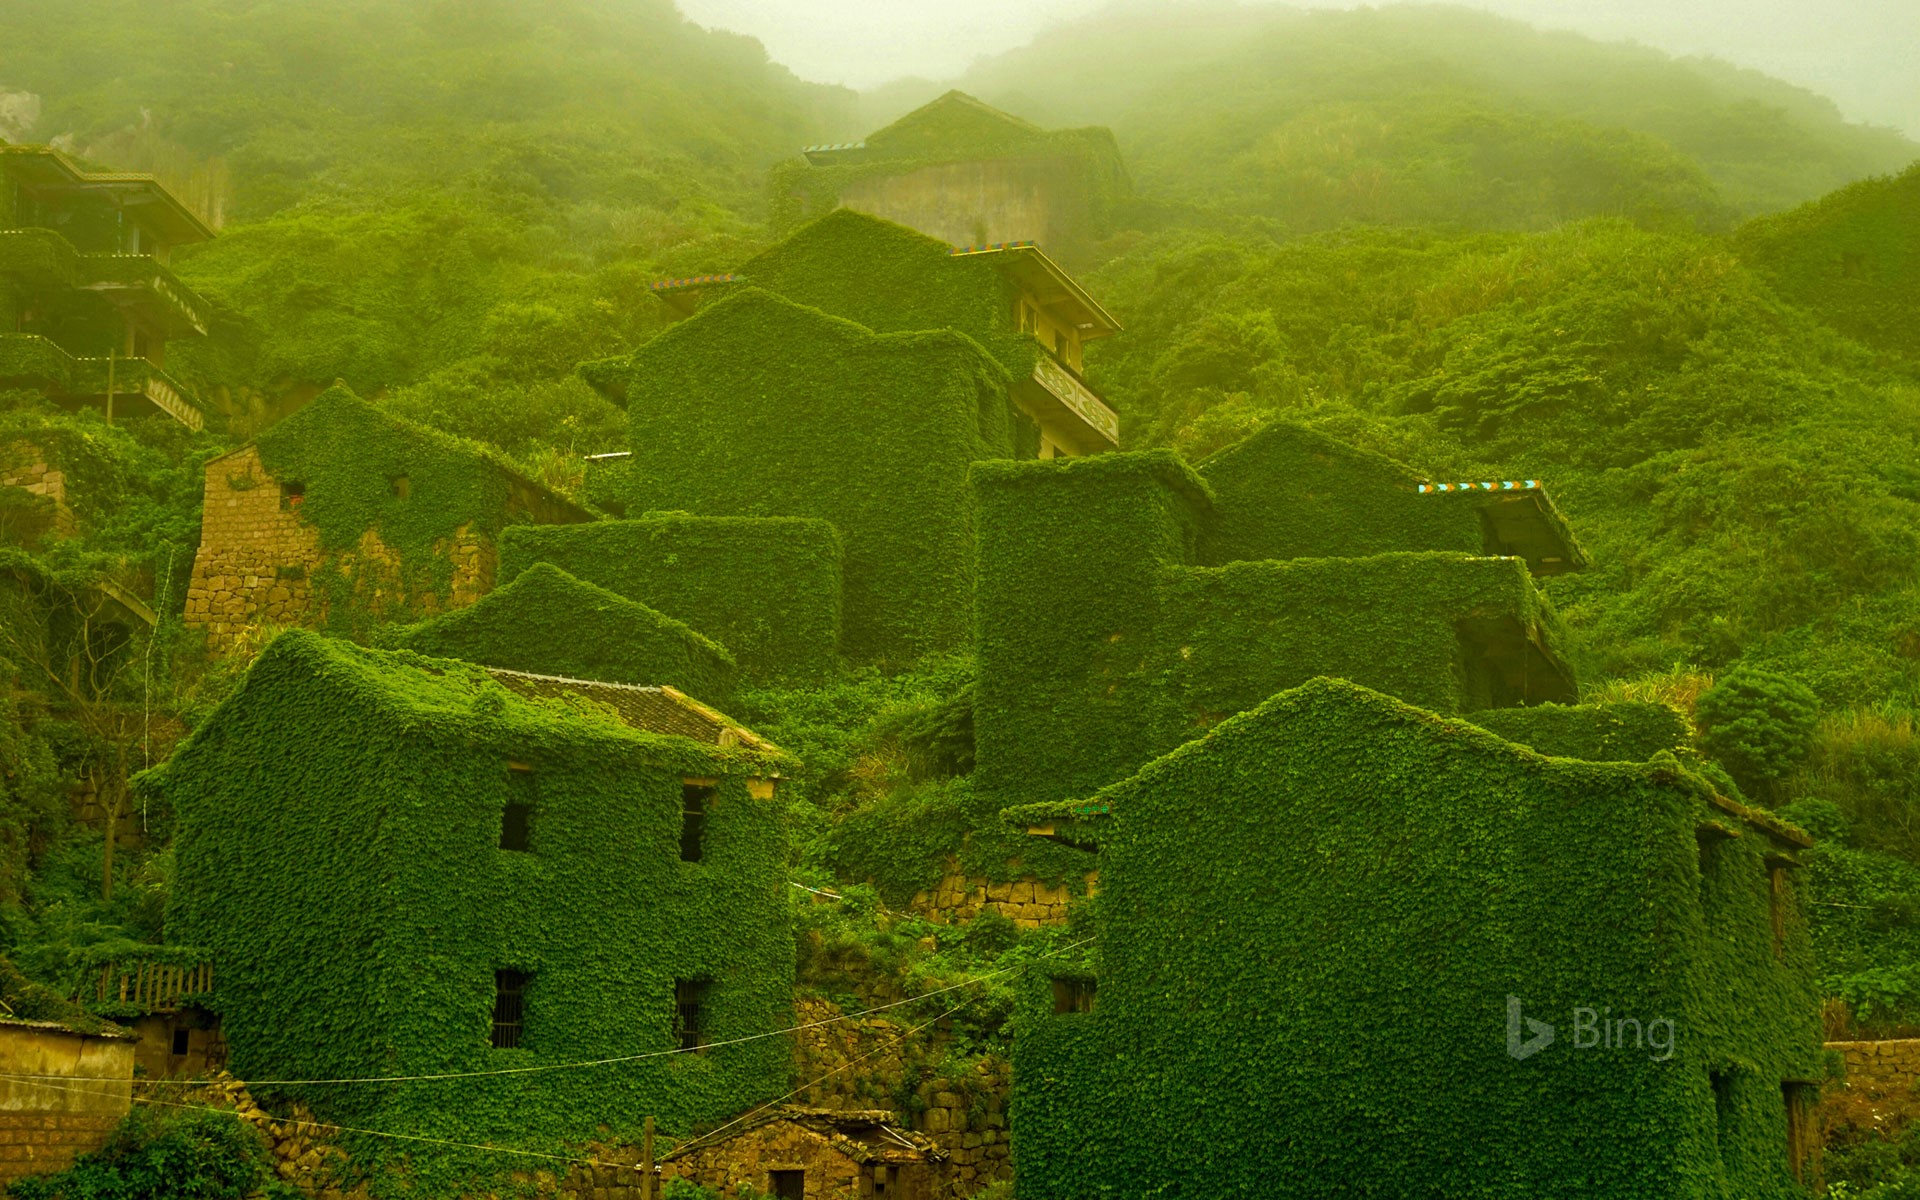 The abandoned village of Houtouwan on Shengshan Island, China